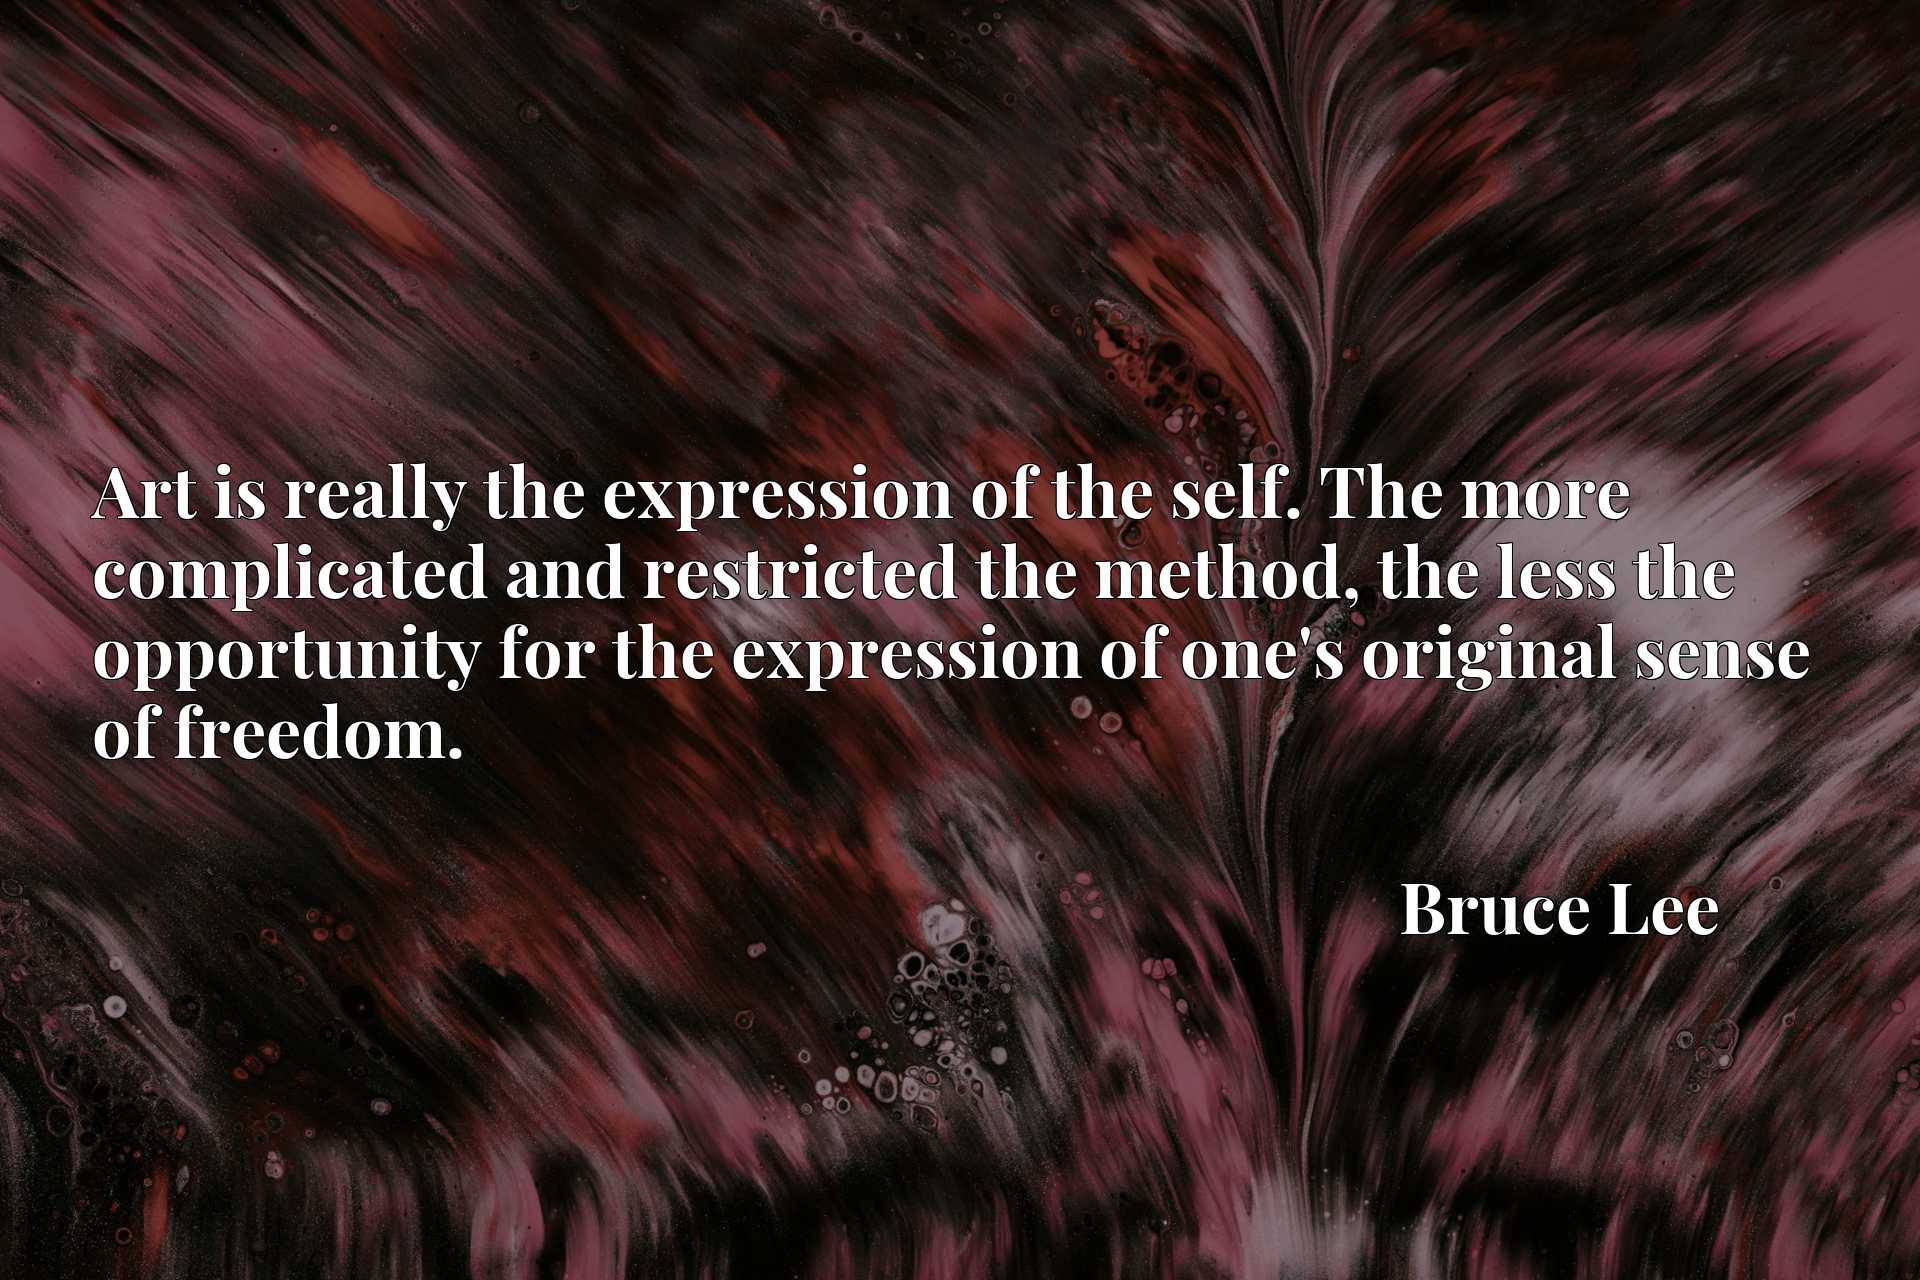 Art is really the expression of the self. The more complicated and restricted the method, the less the opportunity for the expression of one's original sense of freedom.